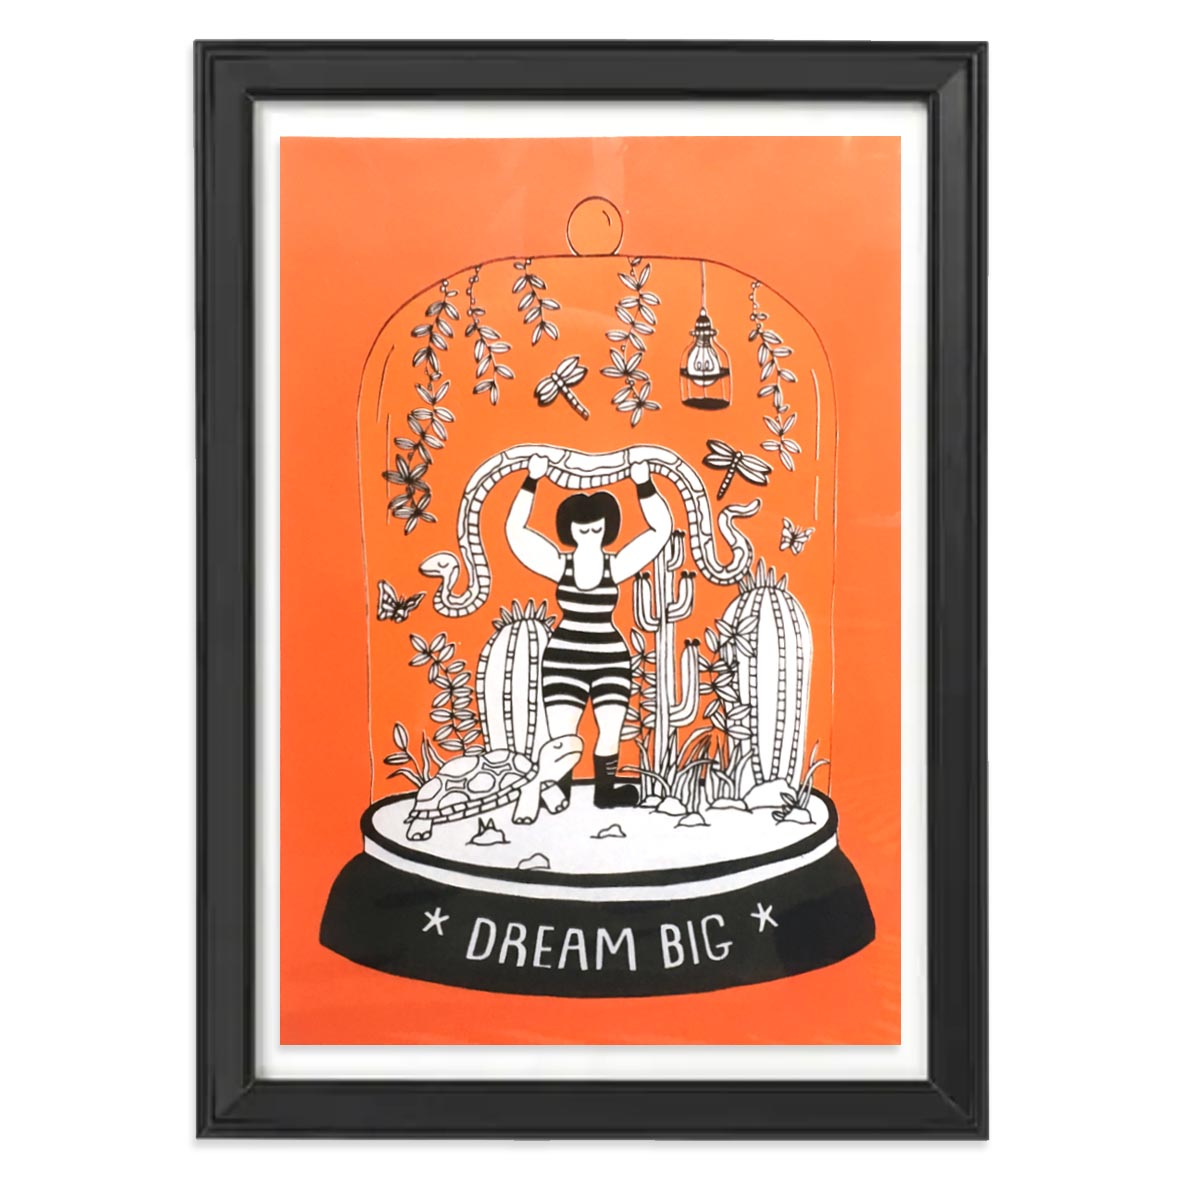 Dream Big screen print that was created for Colony of Artists